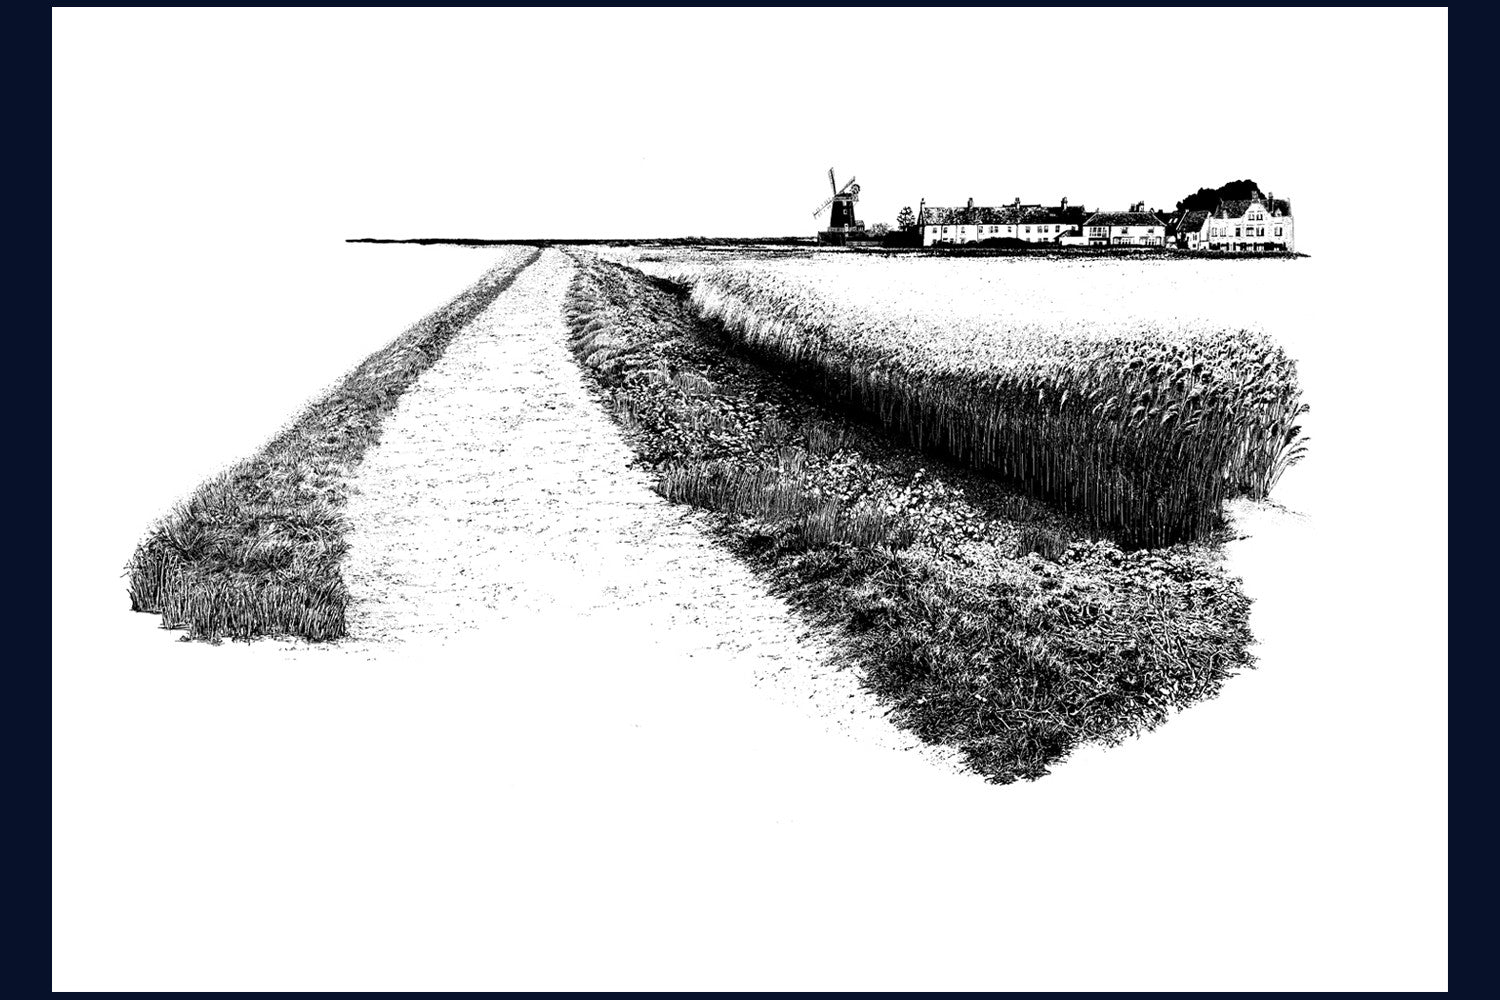 Land Song Limited Edition Print: Cley, Norfolk